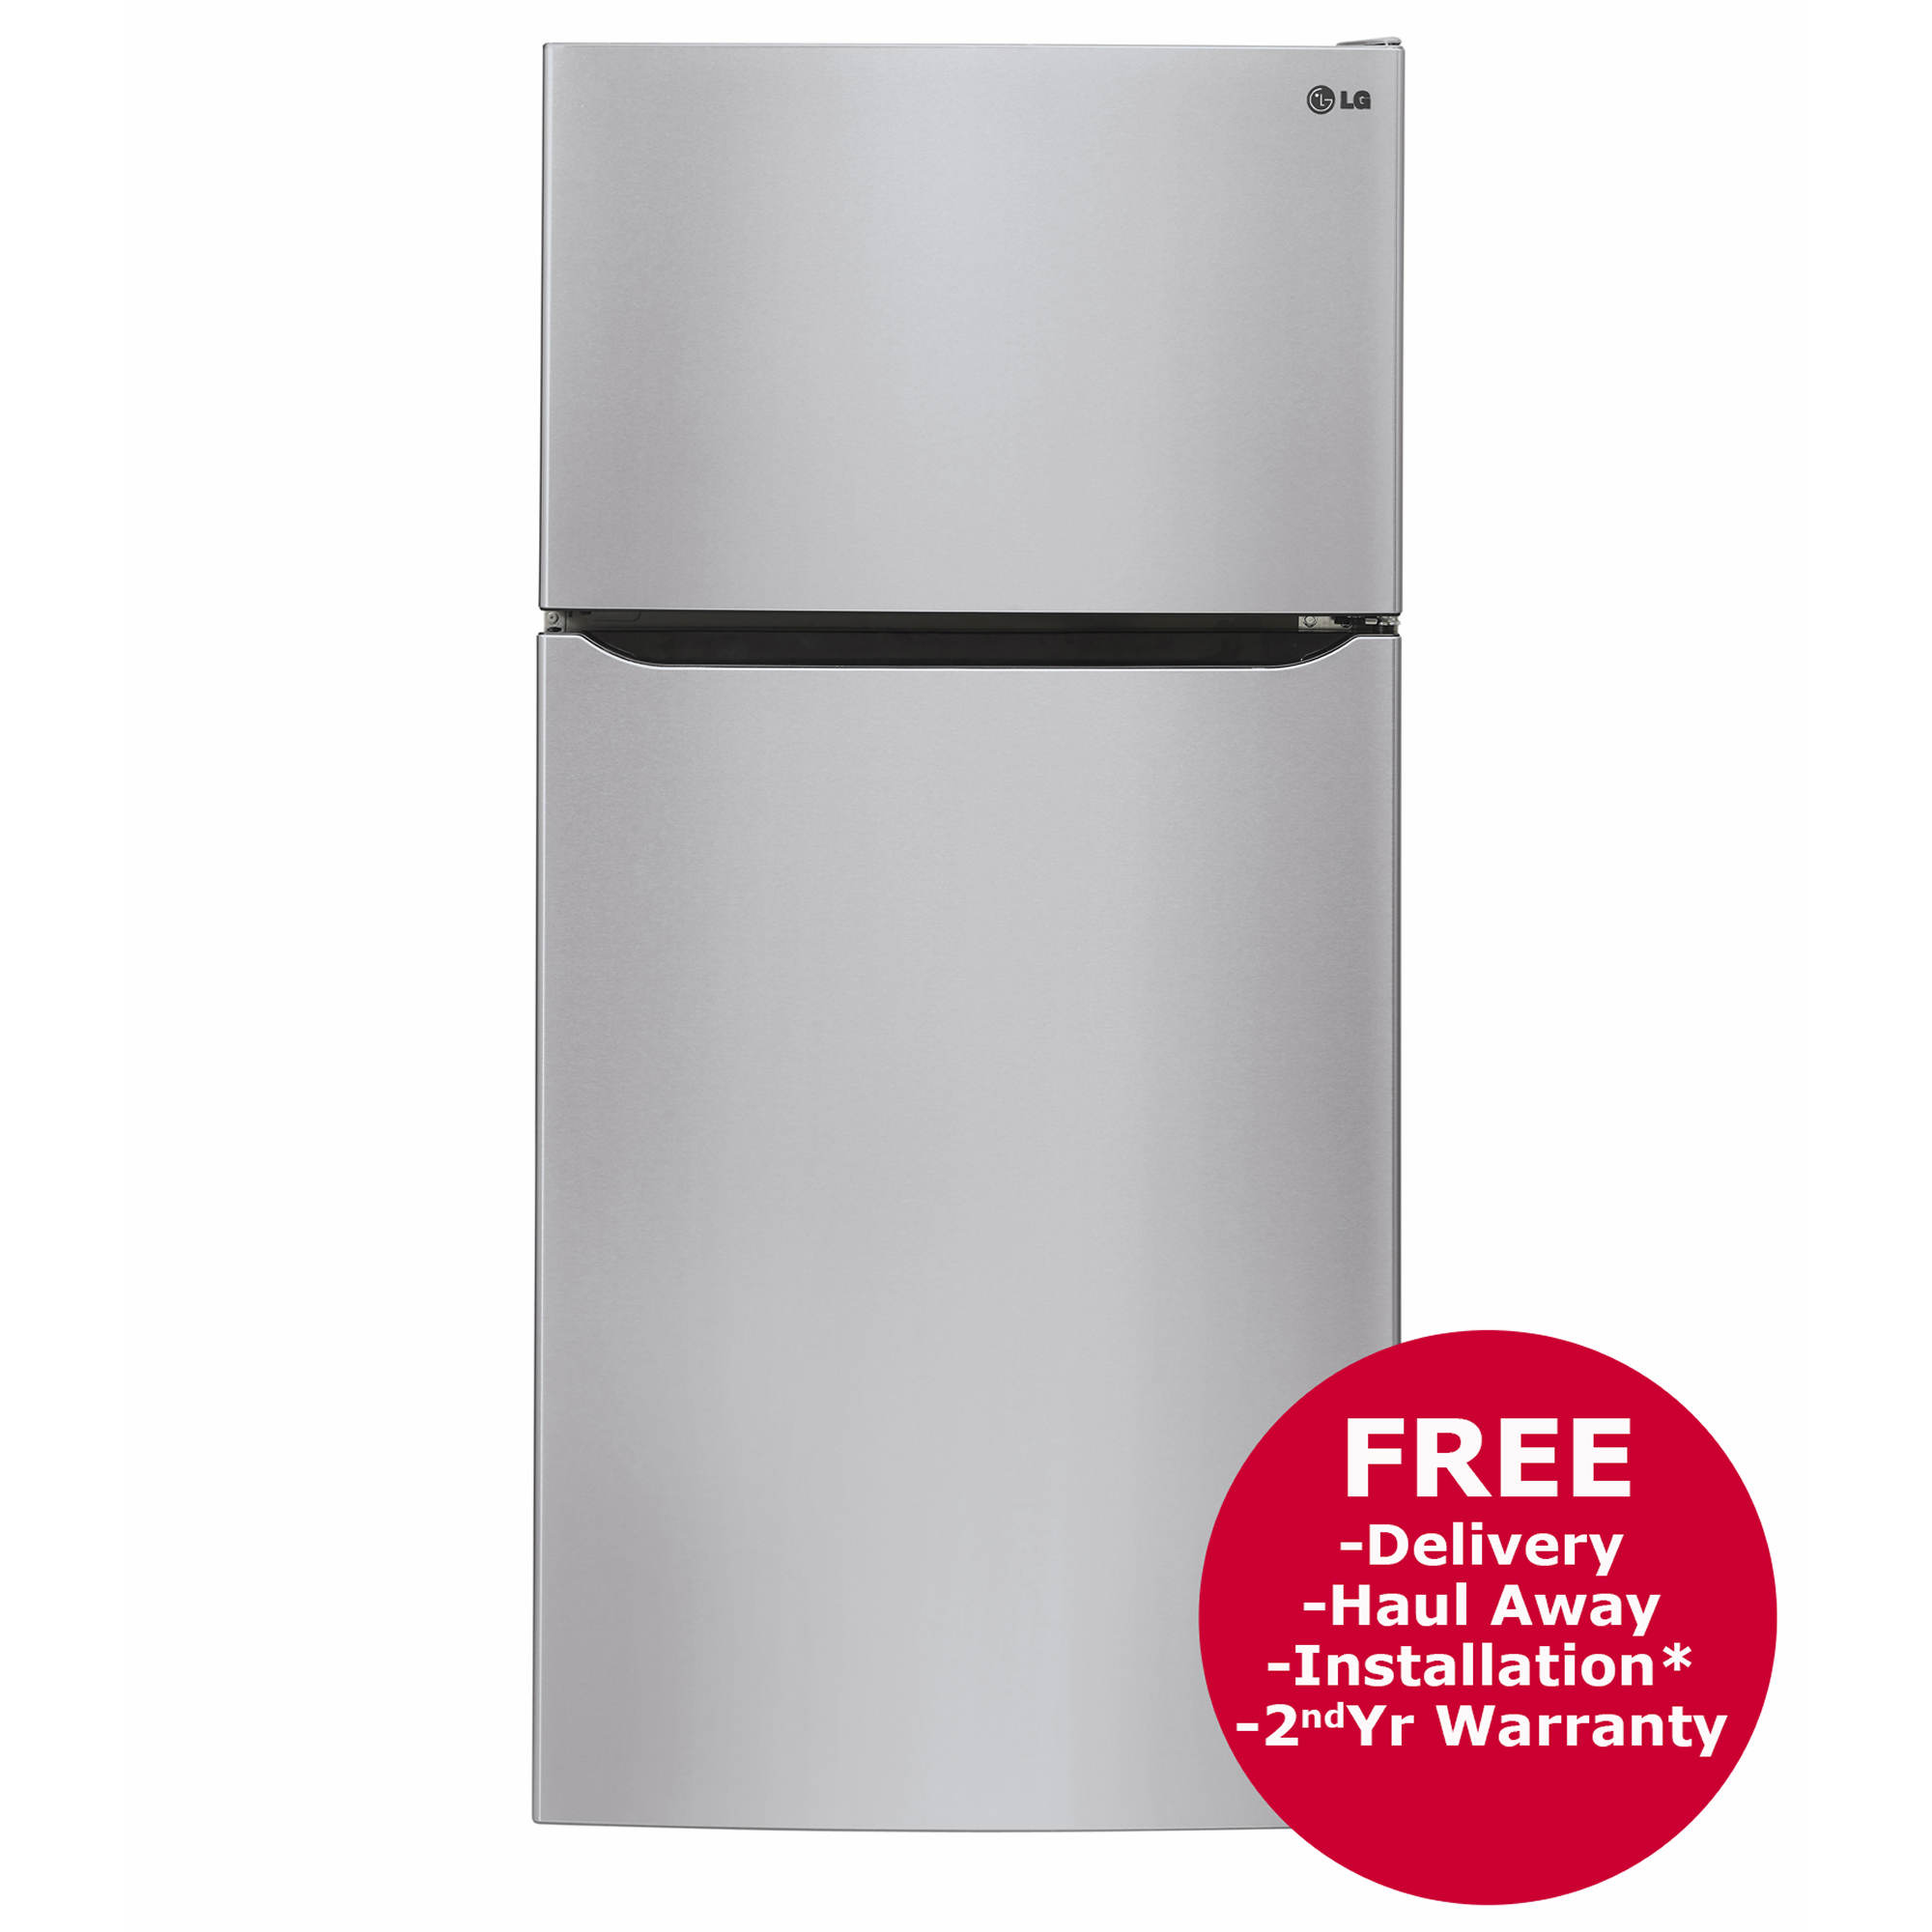 LG 24-Cu.-Ft.- Top-Mount Freezer Refrigerator with Built-in Ice Maker - Stainless Steel